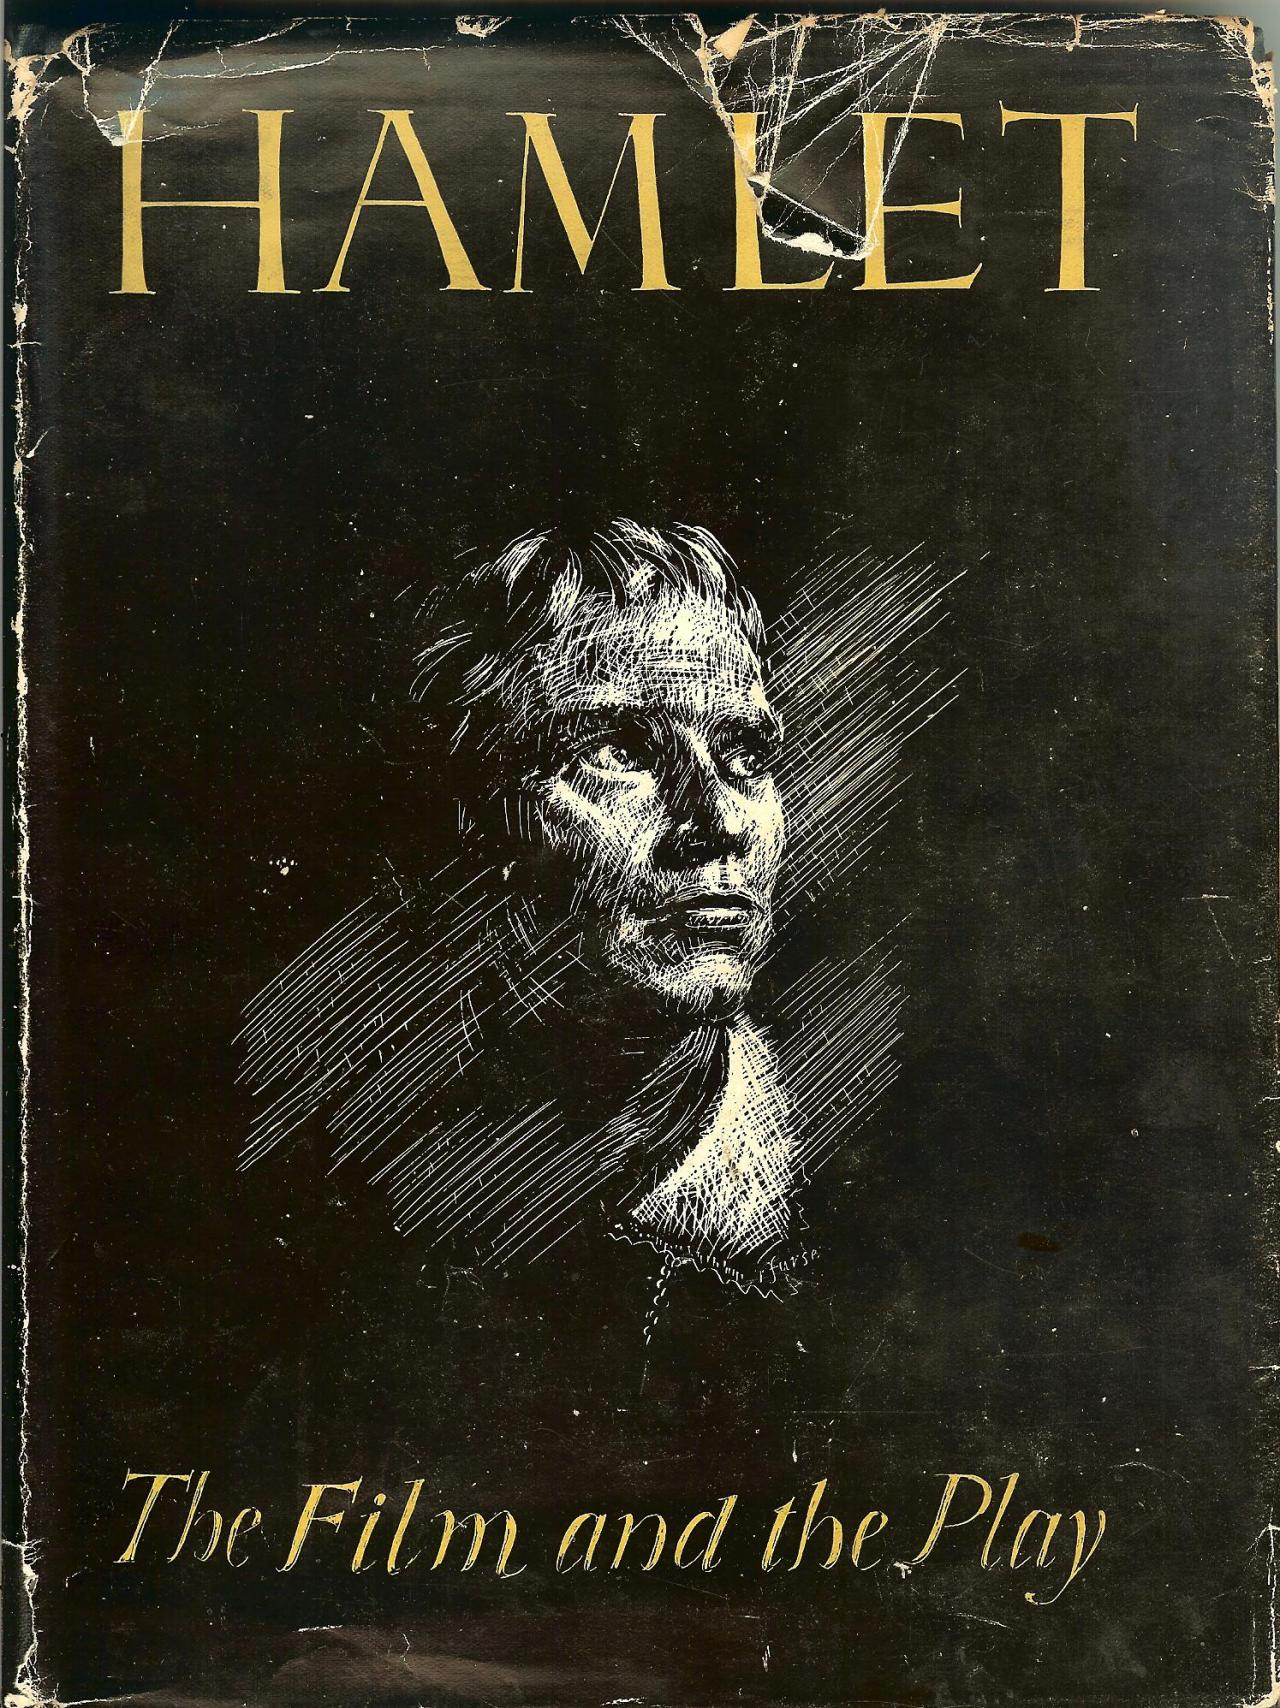 an analysis of the character of hamlet in the play hamlet by william shakespeare Hamlet character commentary essay justin ko seibert ib lit ii 12/12/11 essence of character in his play hamlet, shakespeare introduces to the readers the young protagonist, hamlet, with an intimate conflict: hamlet's duty of avenging the murder of his father versus his hesitant nature.